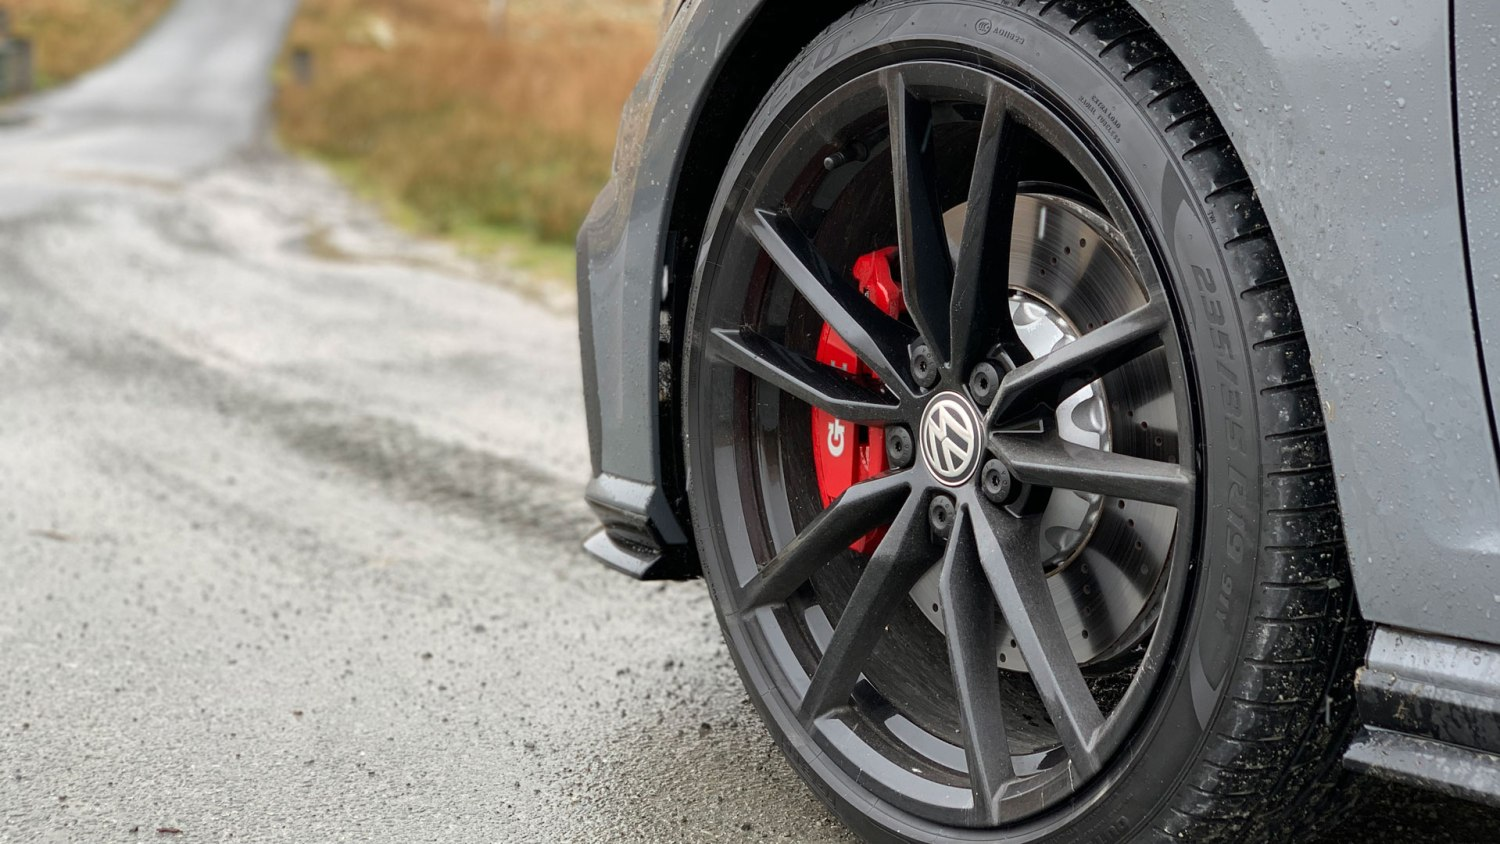 Volkswagen Golf GTI TCR 19-inch wheels